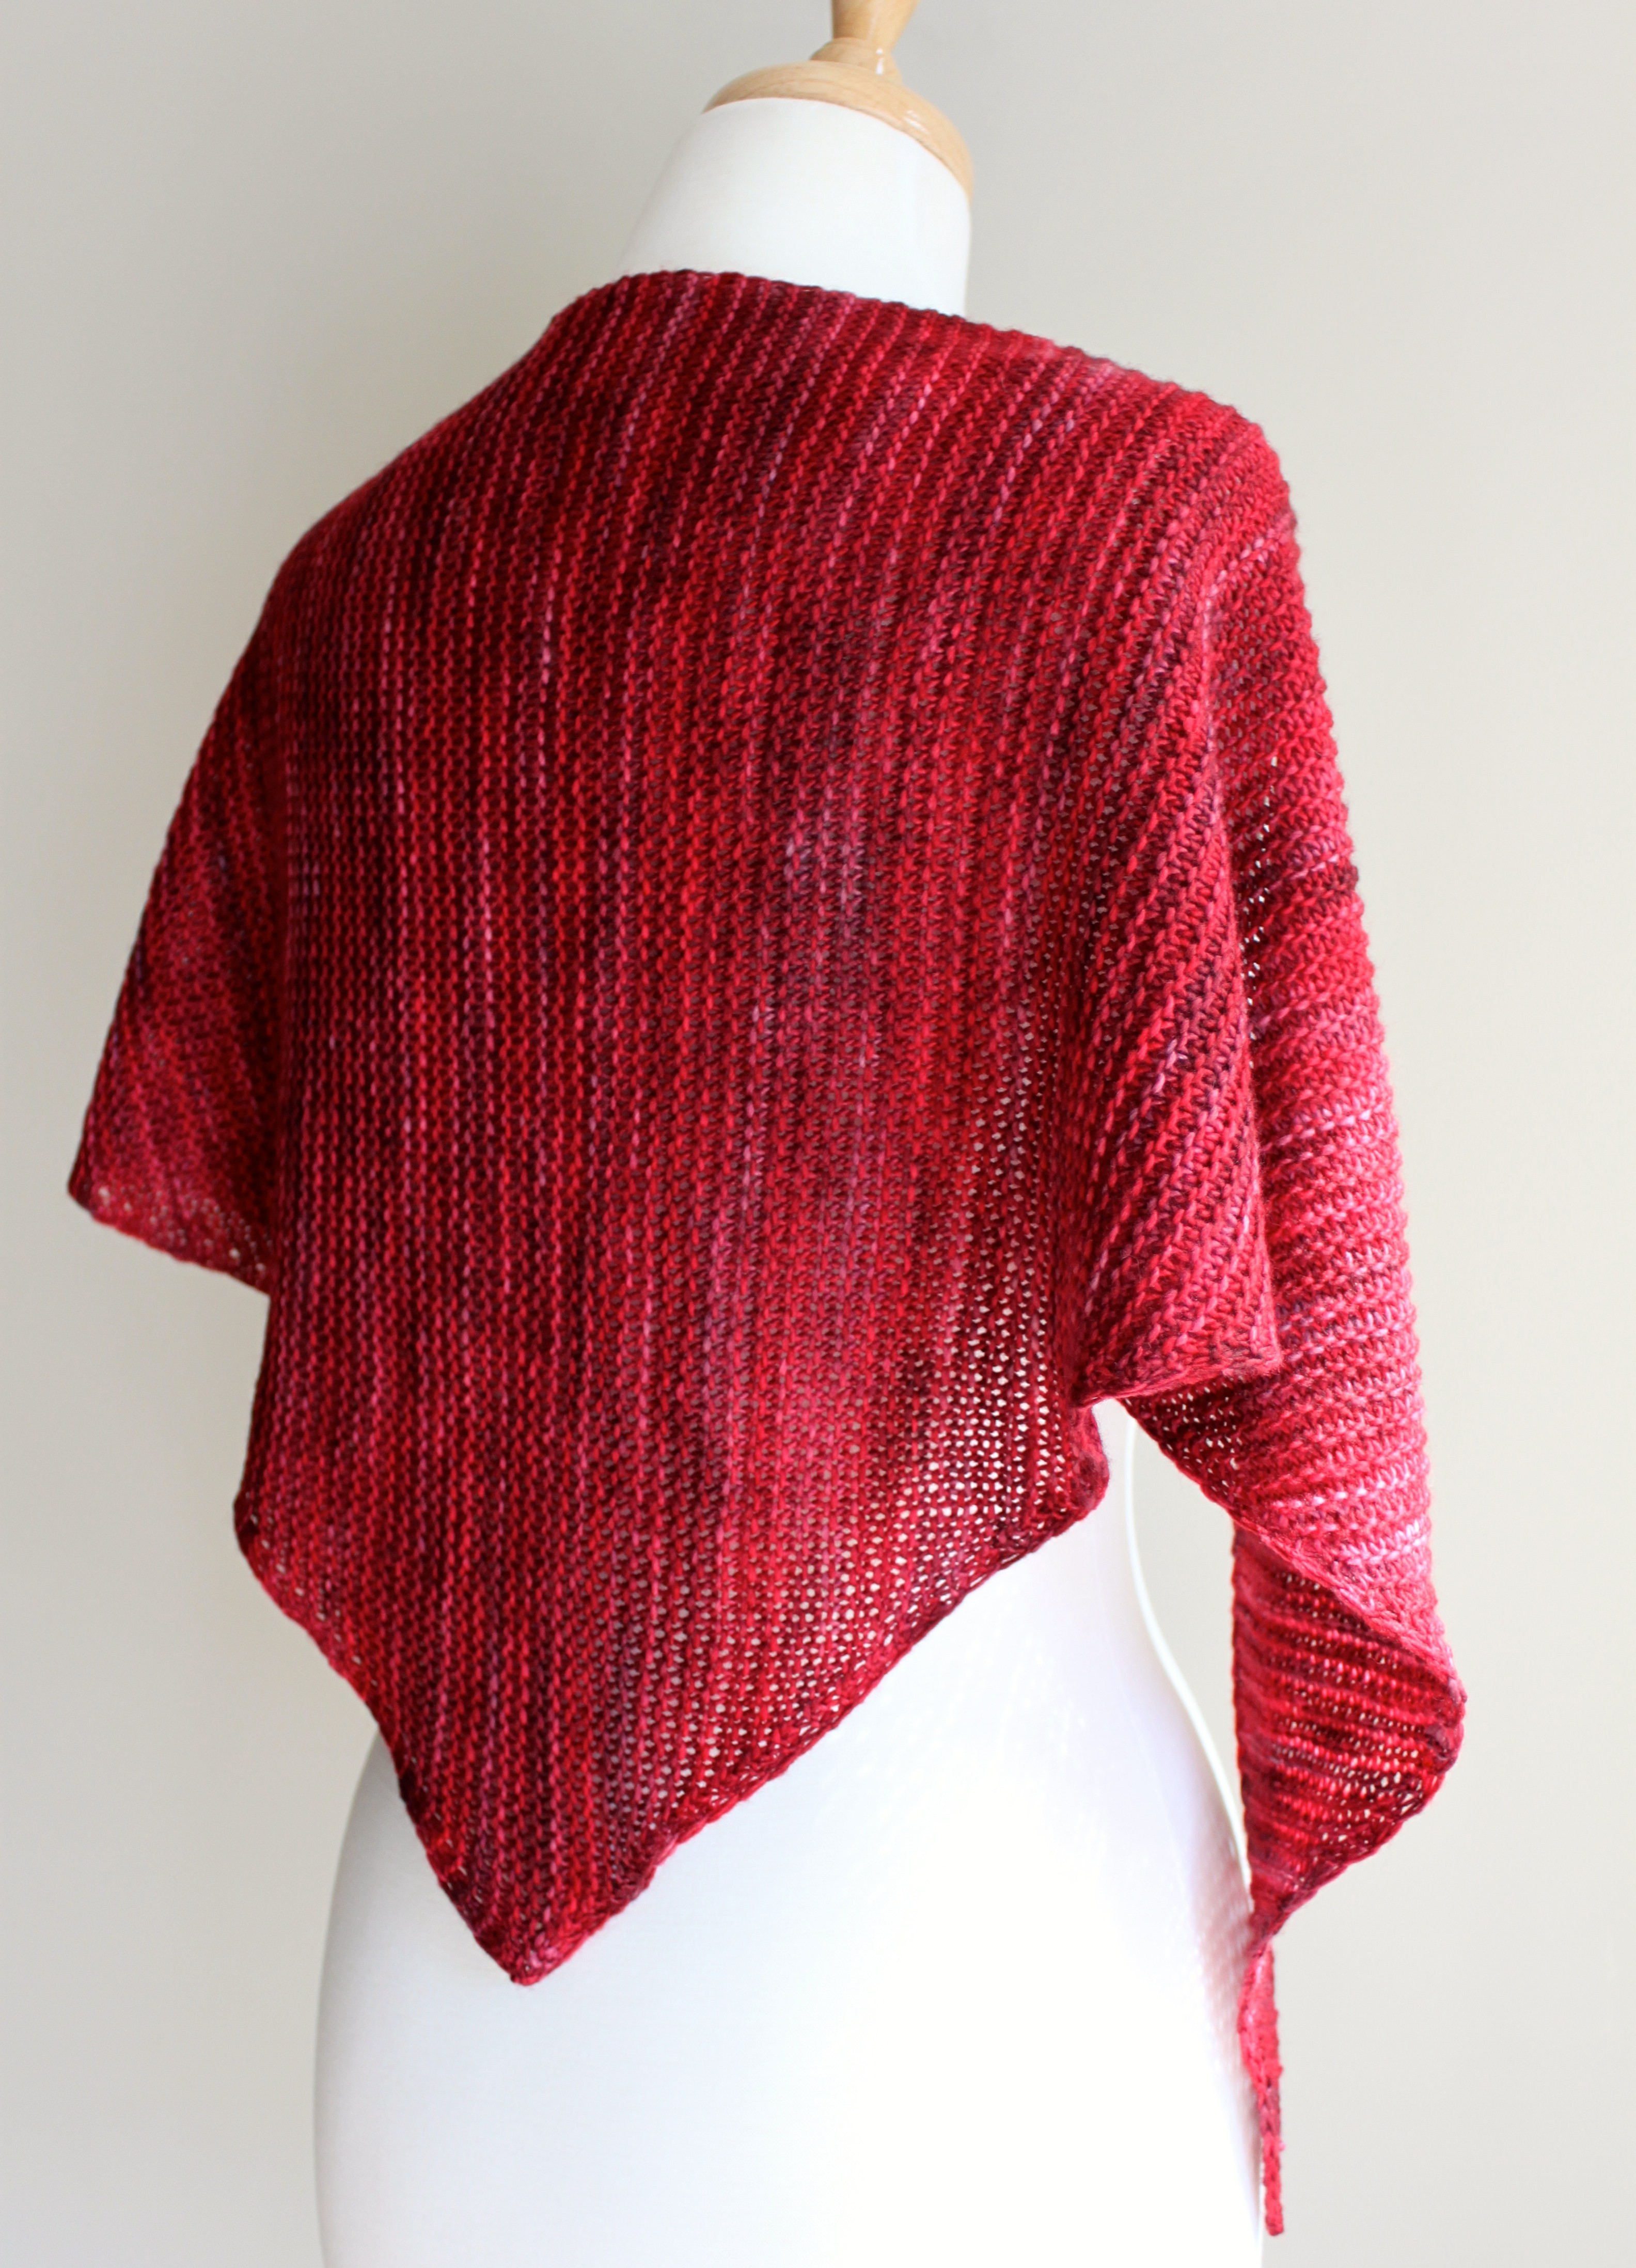 Shawl Patterns Unique Free Knitting Patterns Truly Triangular Scarf Leah Of Luxury 45 Images Shawl Patterns